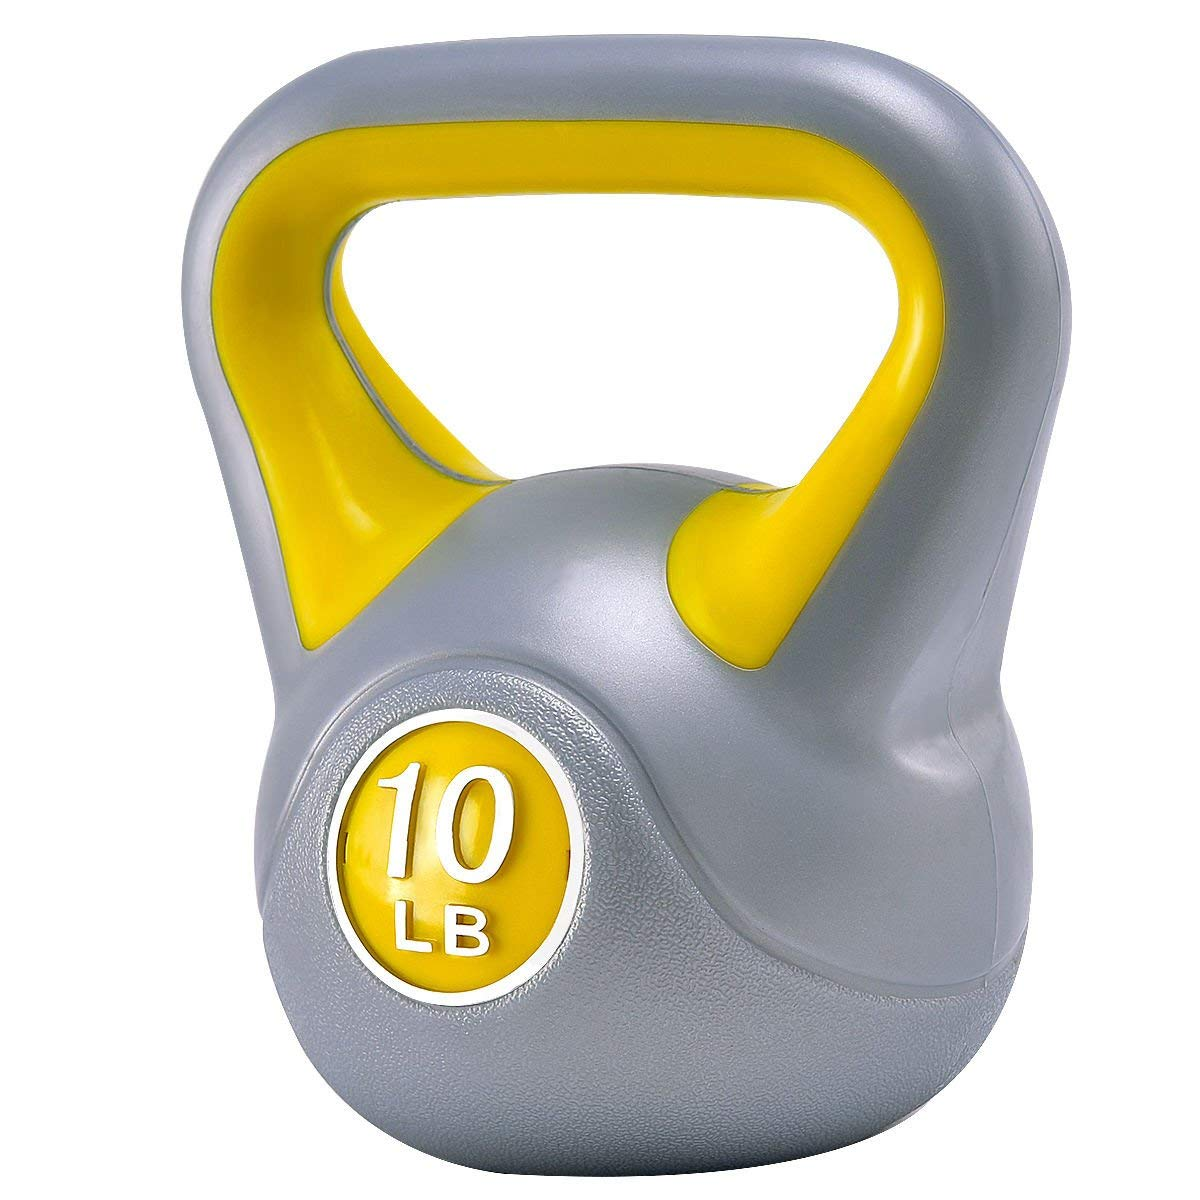 Pounds Kettlebell Weights Barbell for Full Body Workout Fitness Weight Loss Strength Training Cross Training WenstsKufAN 10